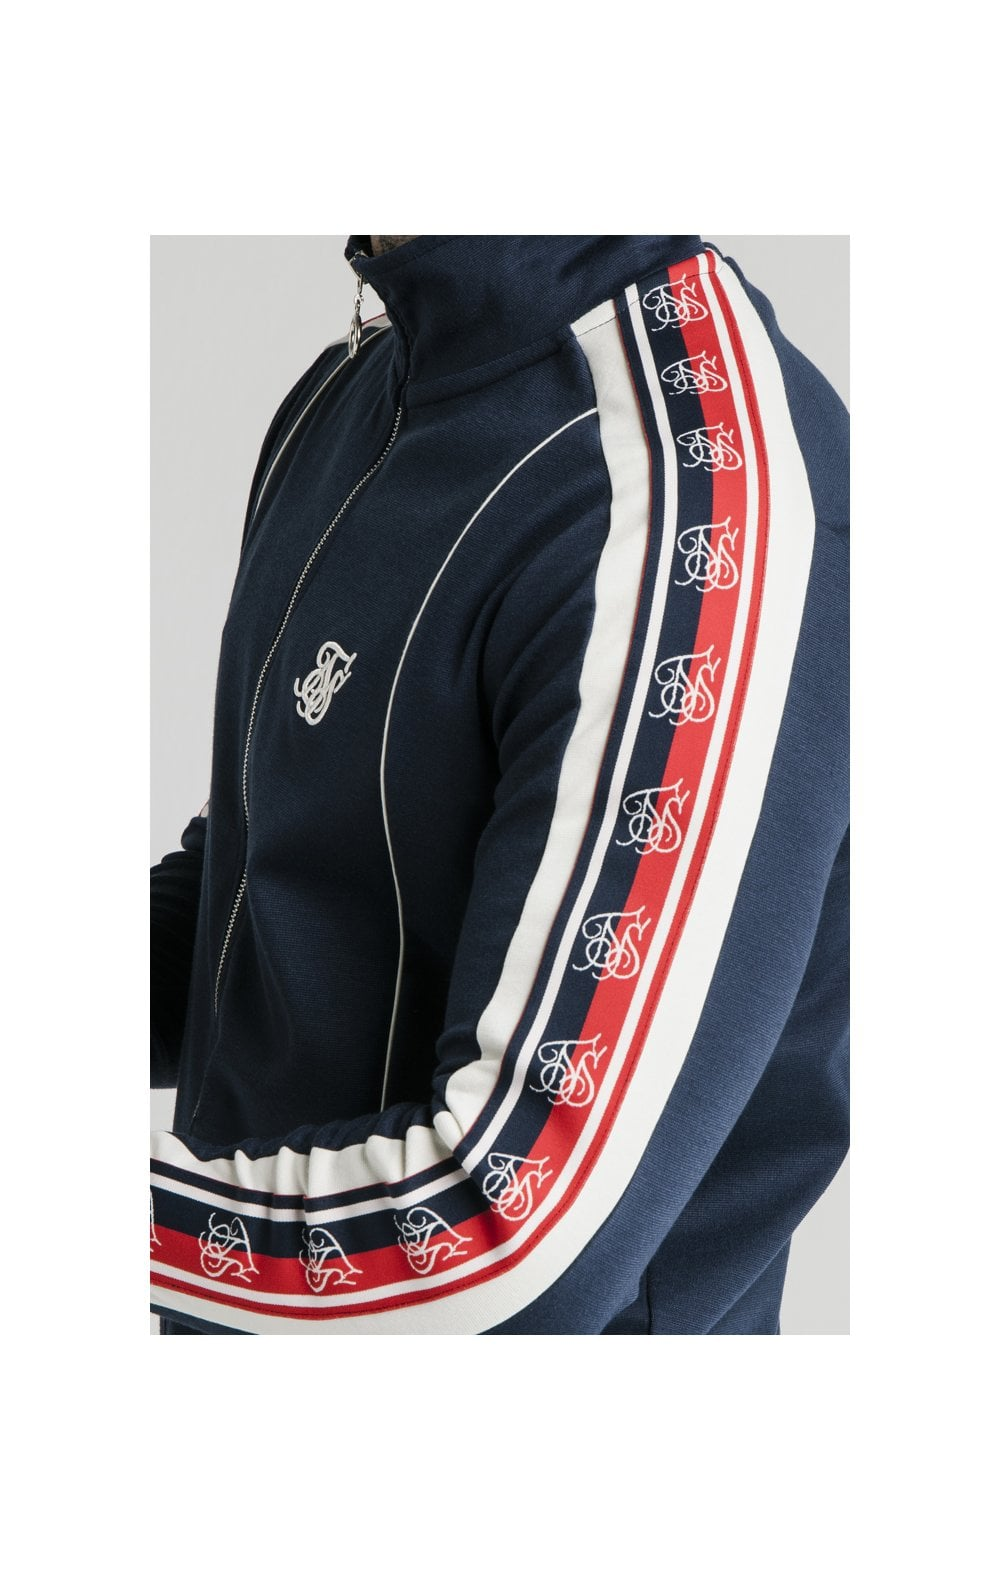 SikSilk Retro Funnel Neck Tape Zip Through Track Top - Navy (3)